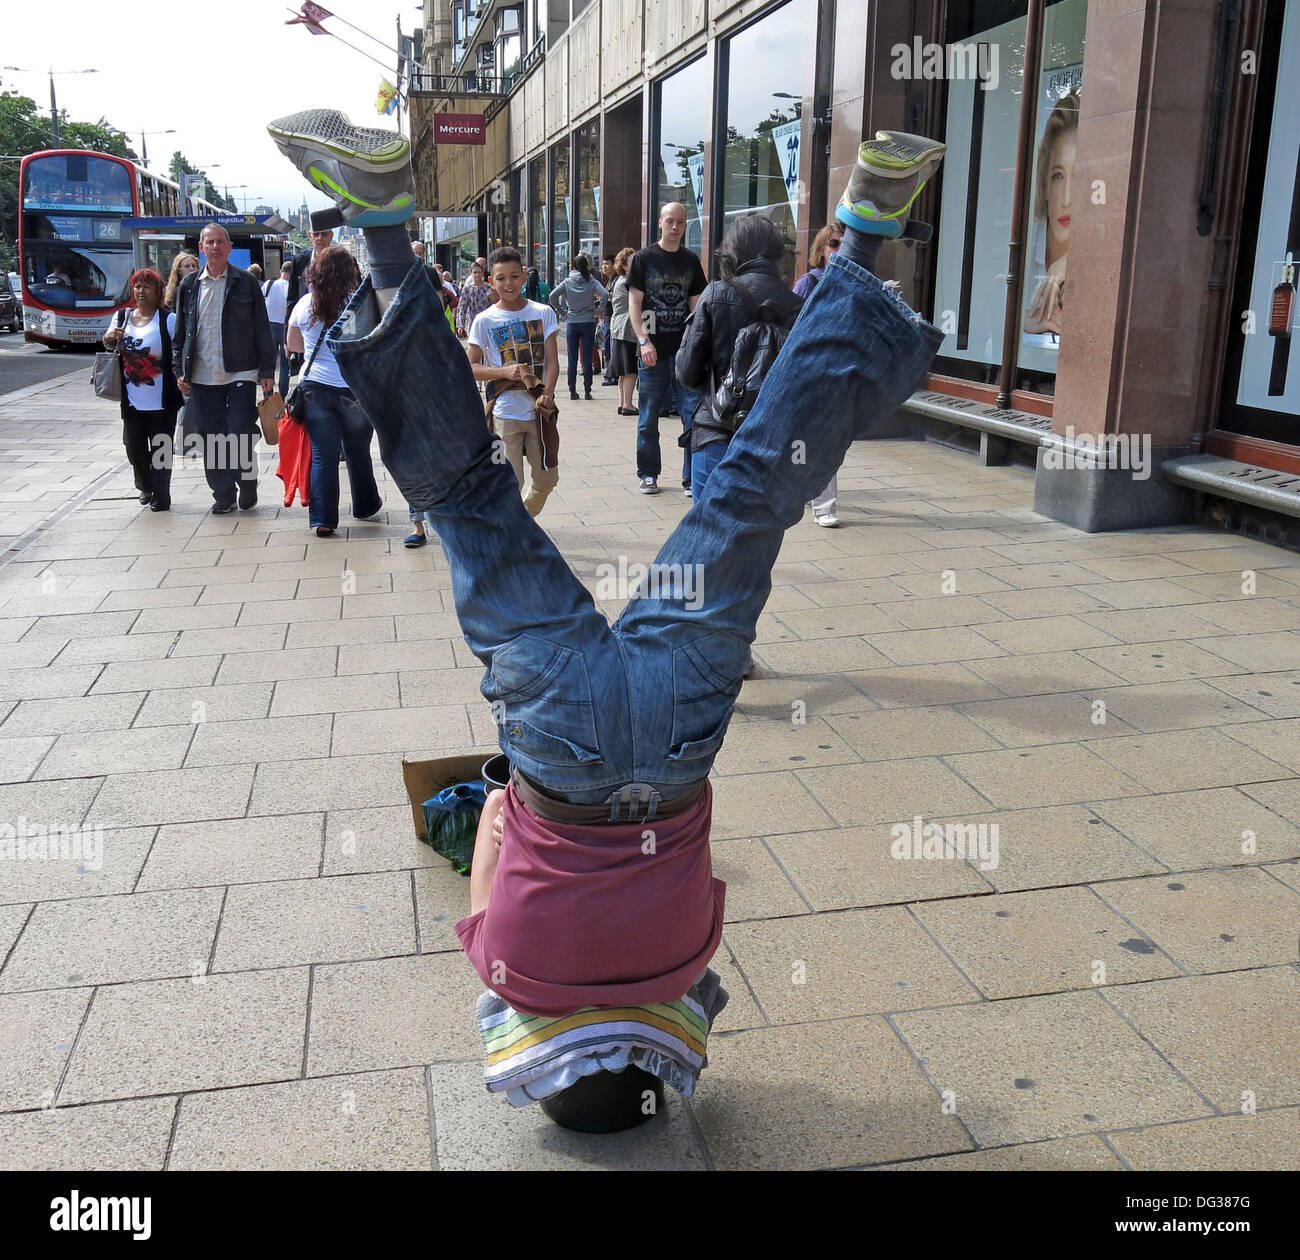 upsidedown,give,generously,street,entertainer,city,fringe,activities,weird,strange,bucket,Scotland,UK,GB,great,Britain,collecting,coins,money,cash,donations,donation,gotonysmith,Buy Pictures of,Buy Images Of